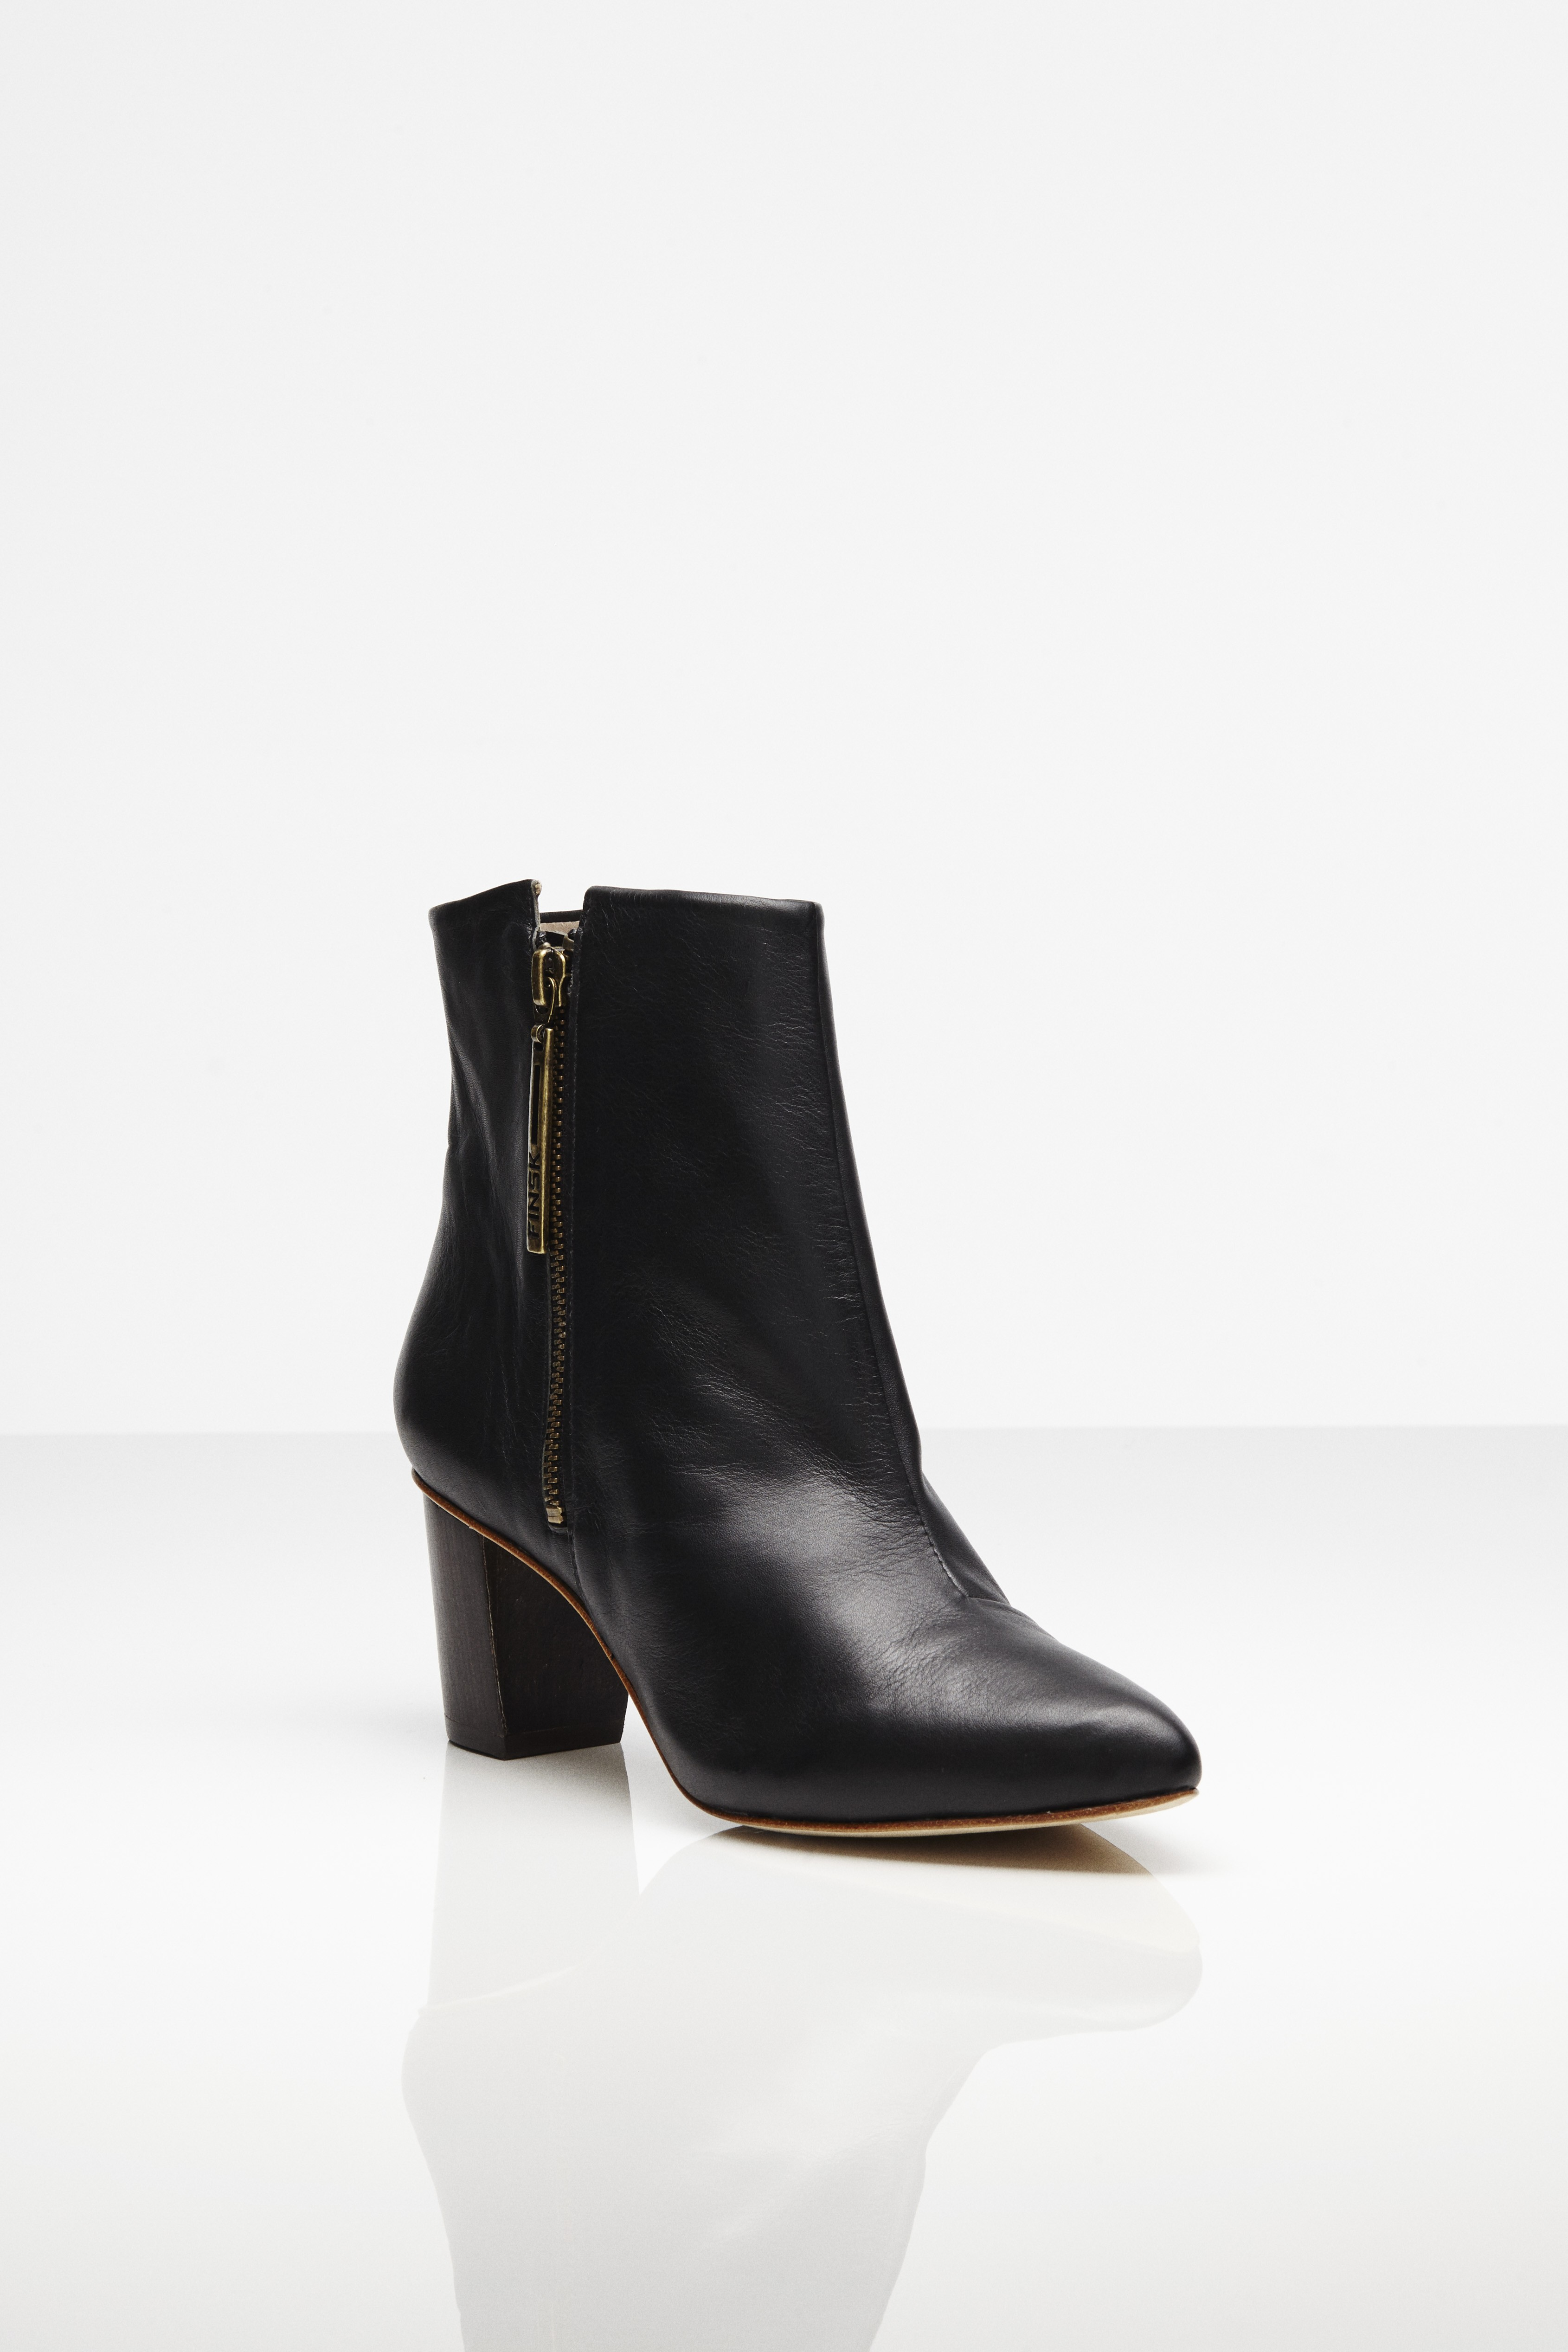 FINSK 466-09 ANKLE BOOTS FRONT